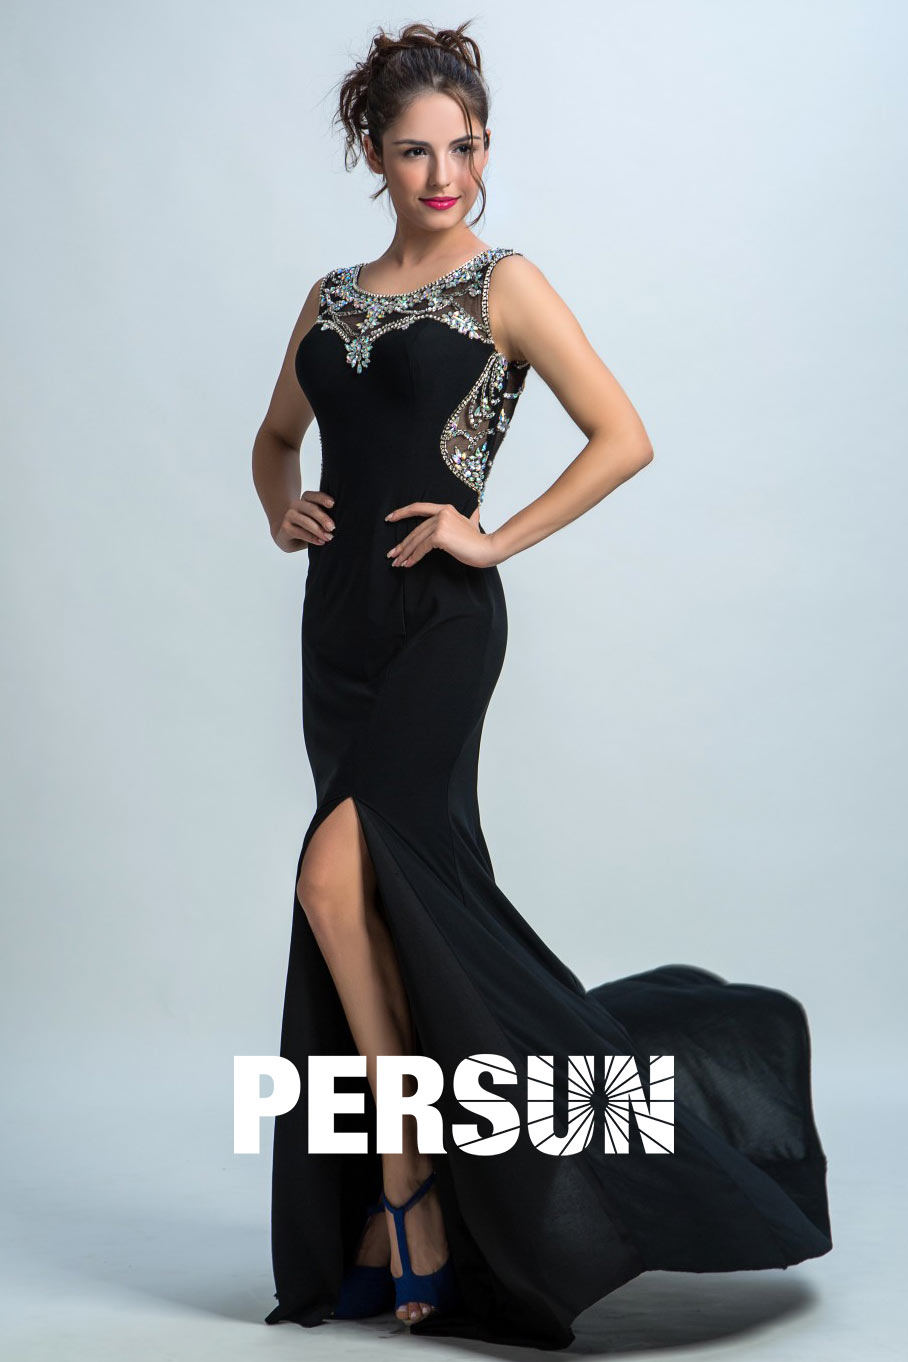 Persun.cc Official Blog – All about Wedding, Formal Dresses and Fashion